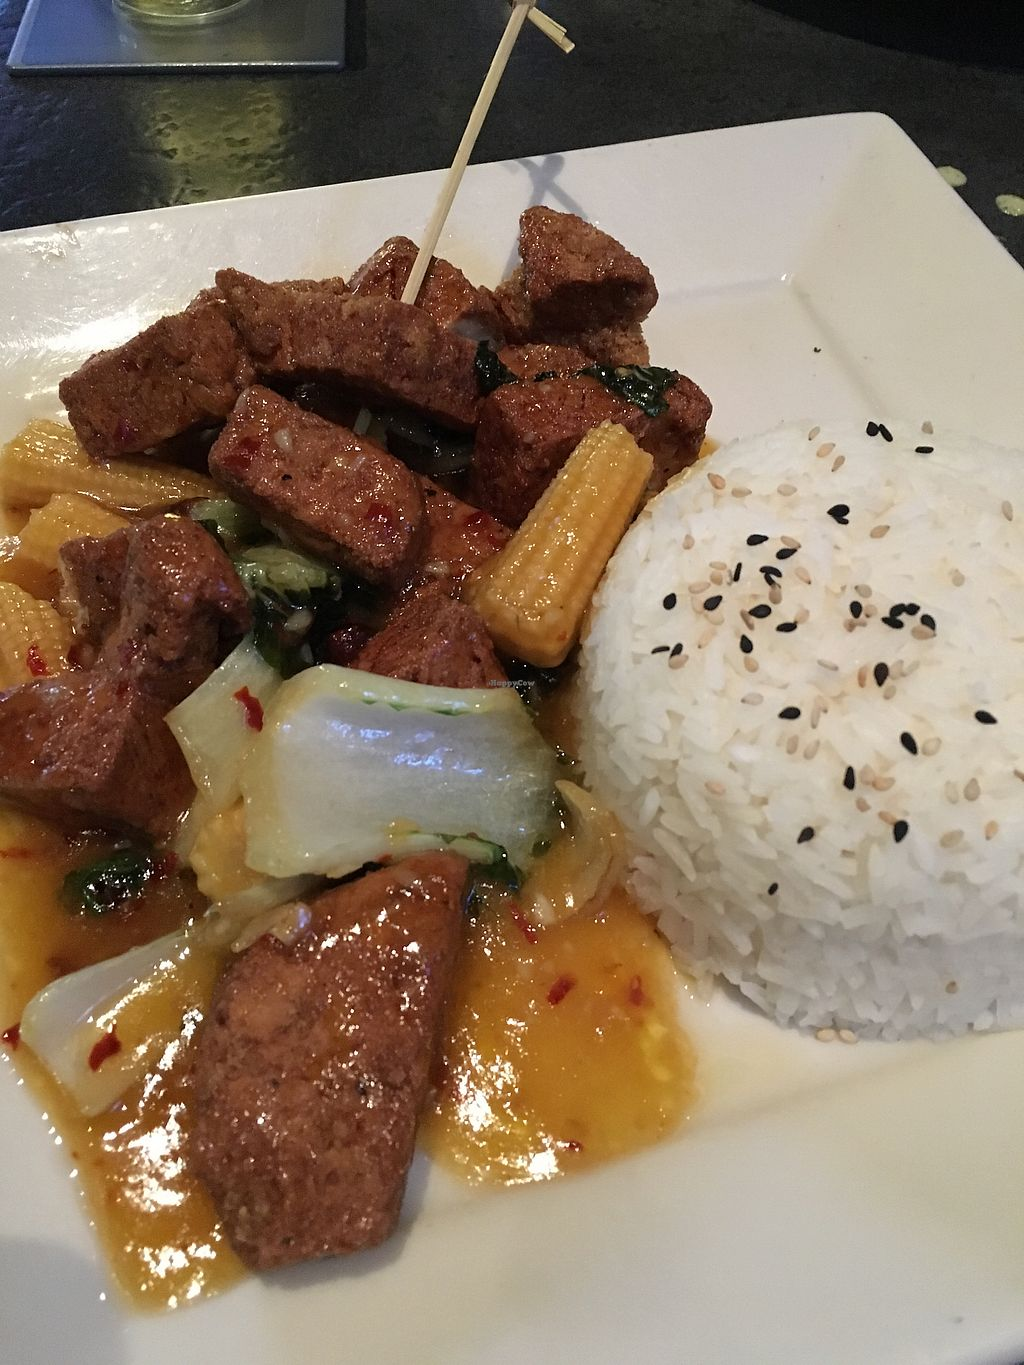 """Photo of Yard House  by <a href=""""/members/profile/JillFulbrightGray"""">JillFulbrightGray</a> <br/>Awesome orange chicken! <br/> February 27, 2018  - <a href='/contact/abuse/image/93566/364395'>Report</a>"""